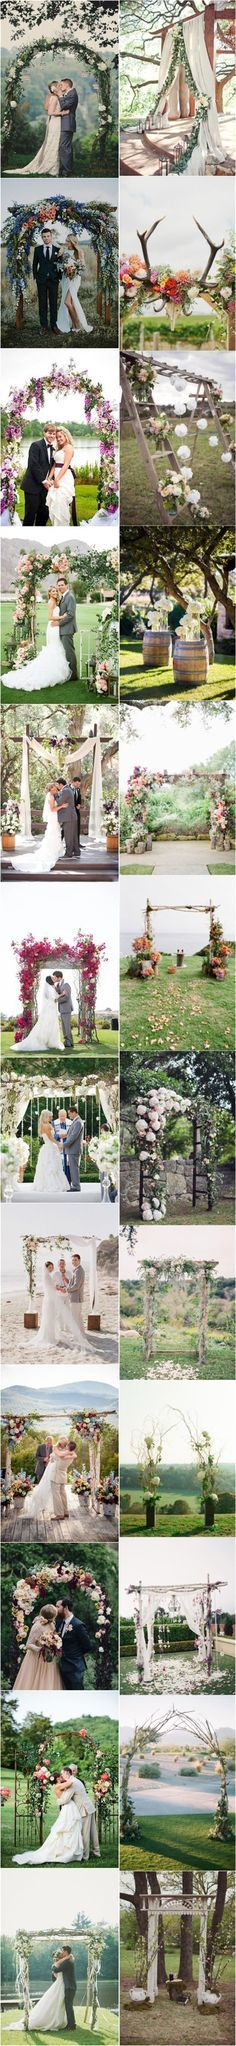 26 Floral Wedding Arches Decorating Ideas | www.deerpearlflow... #Interior_Home_Design #Top_Decorating_Ideas #Home_decor #Italian_Furniture #Perfect_Home_Decor #Home_Design